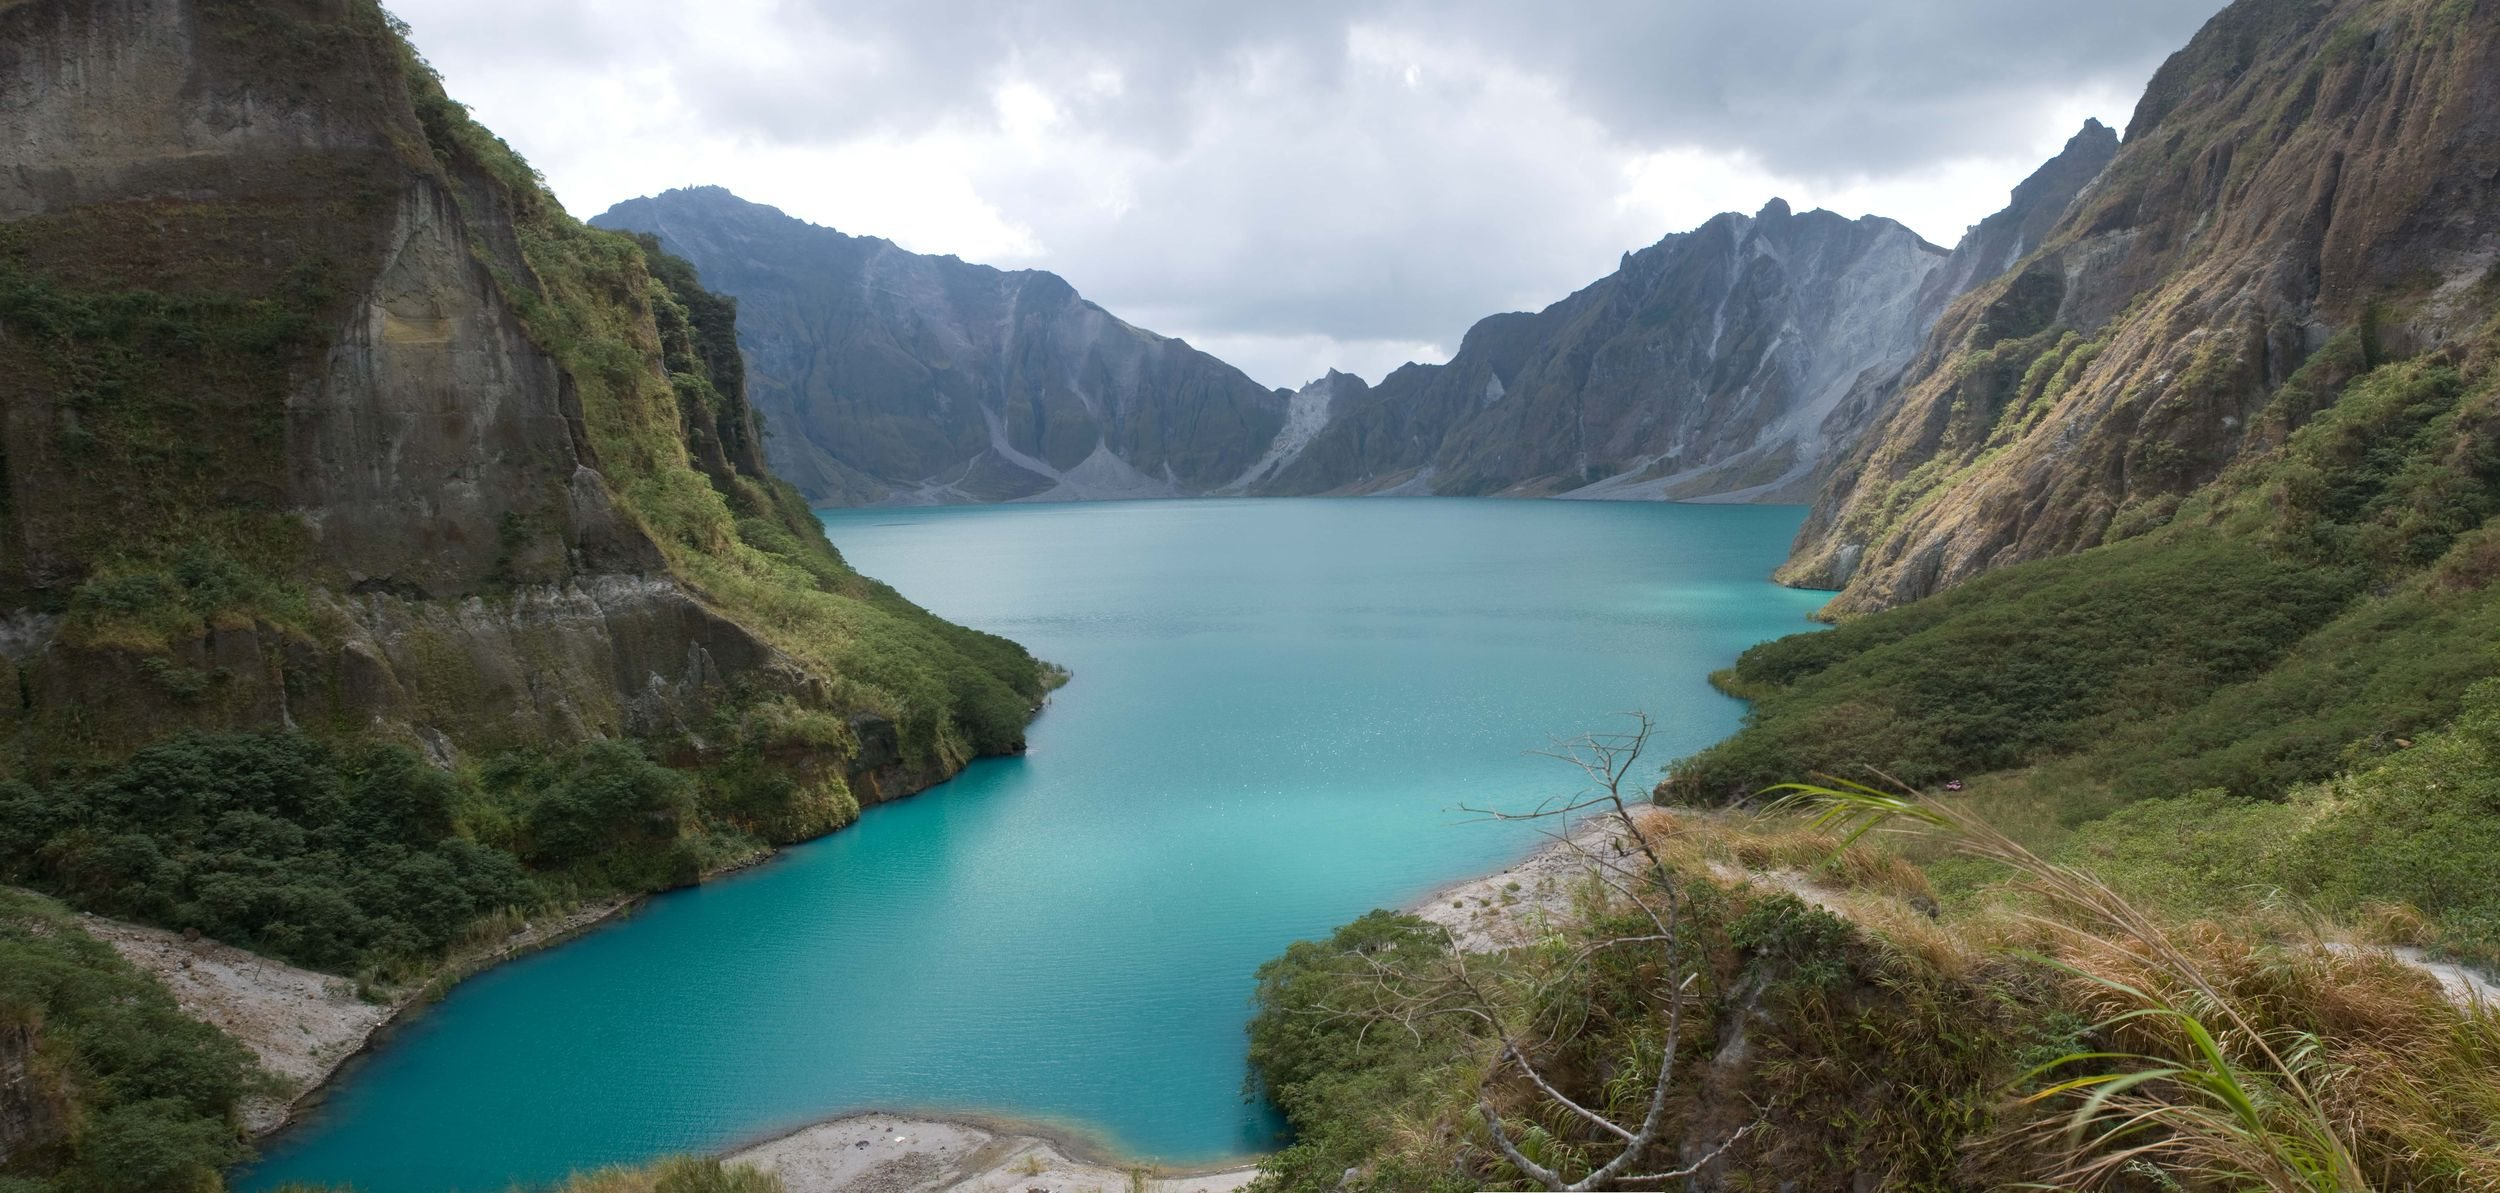 pinatubo crater lake wallpaper [2500x1193]